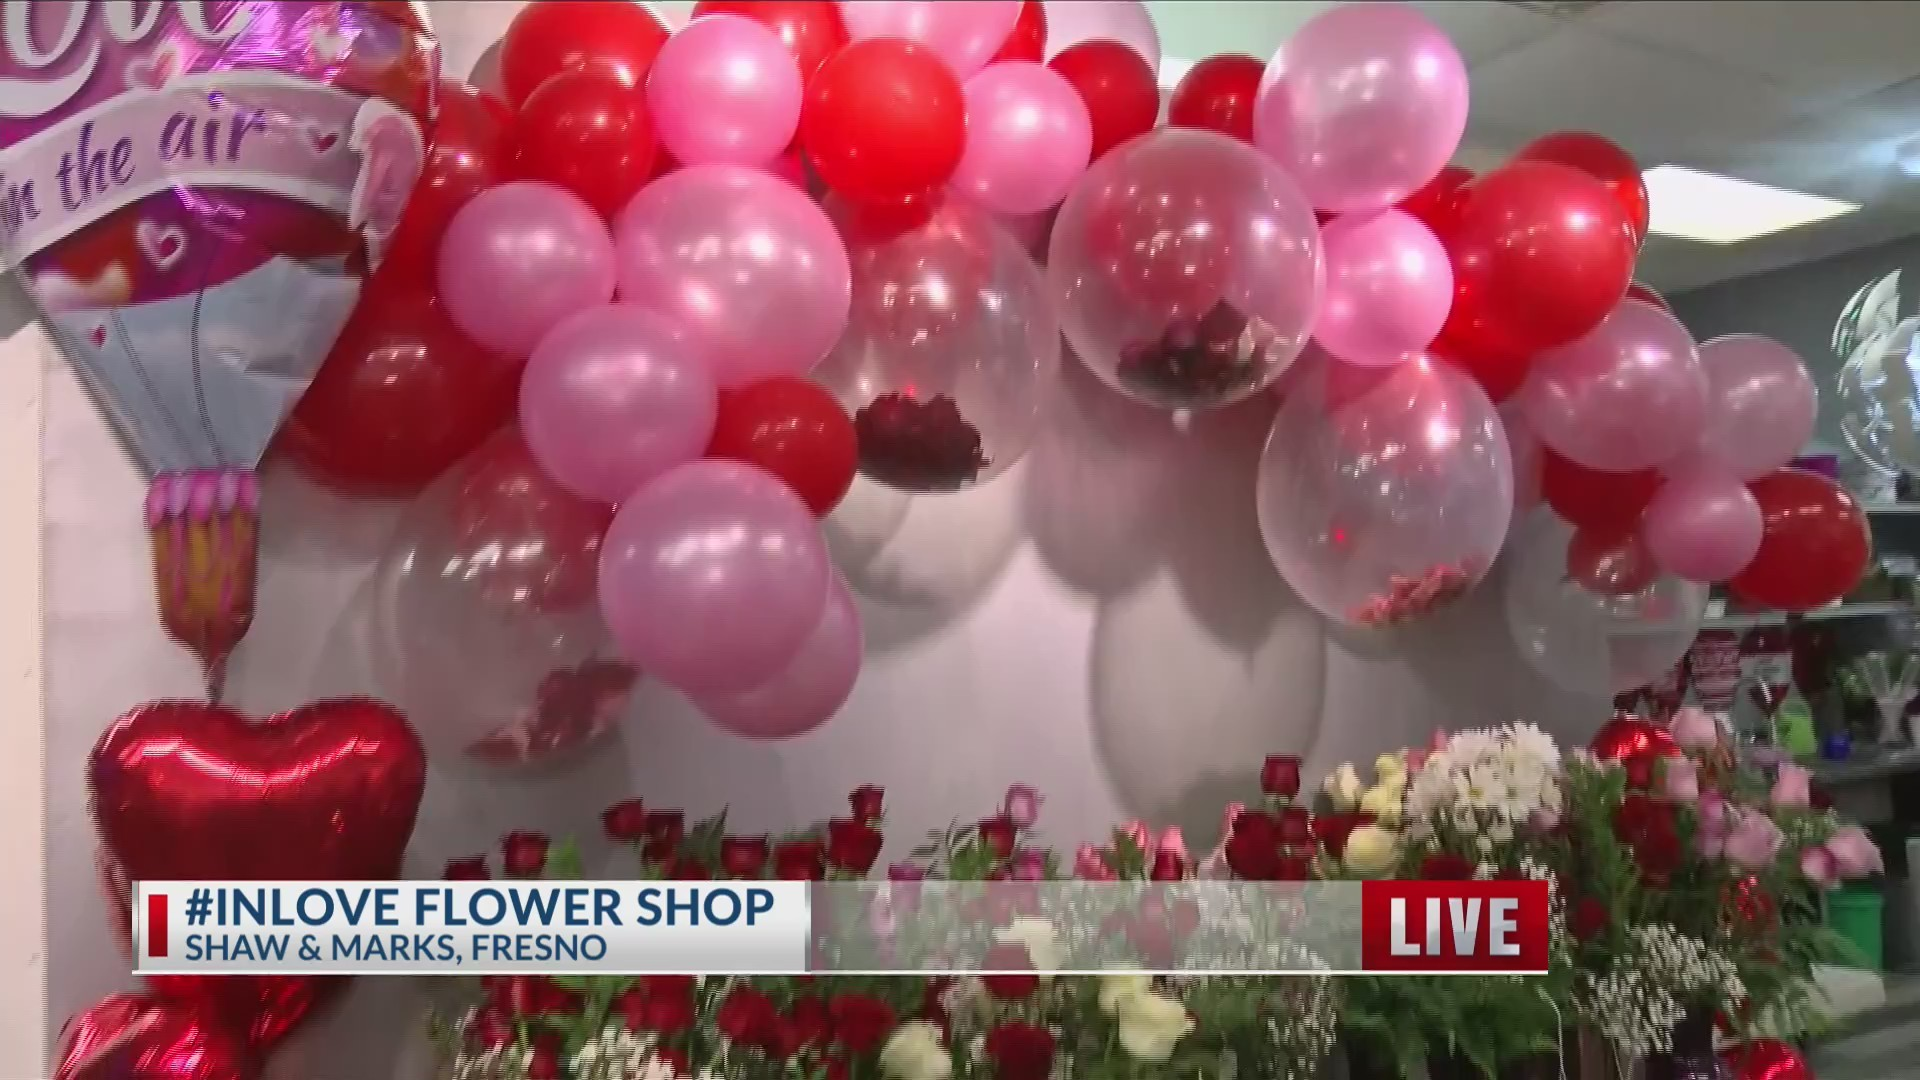 Just in time for Valentine's Day, a new flower shop opens up in Fresno Part 4